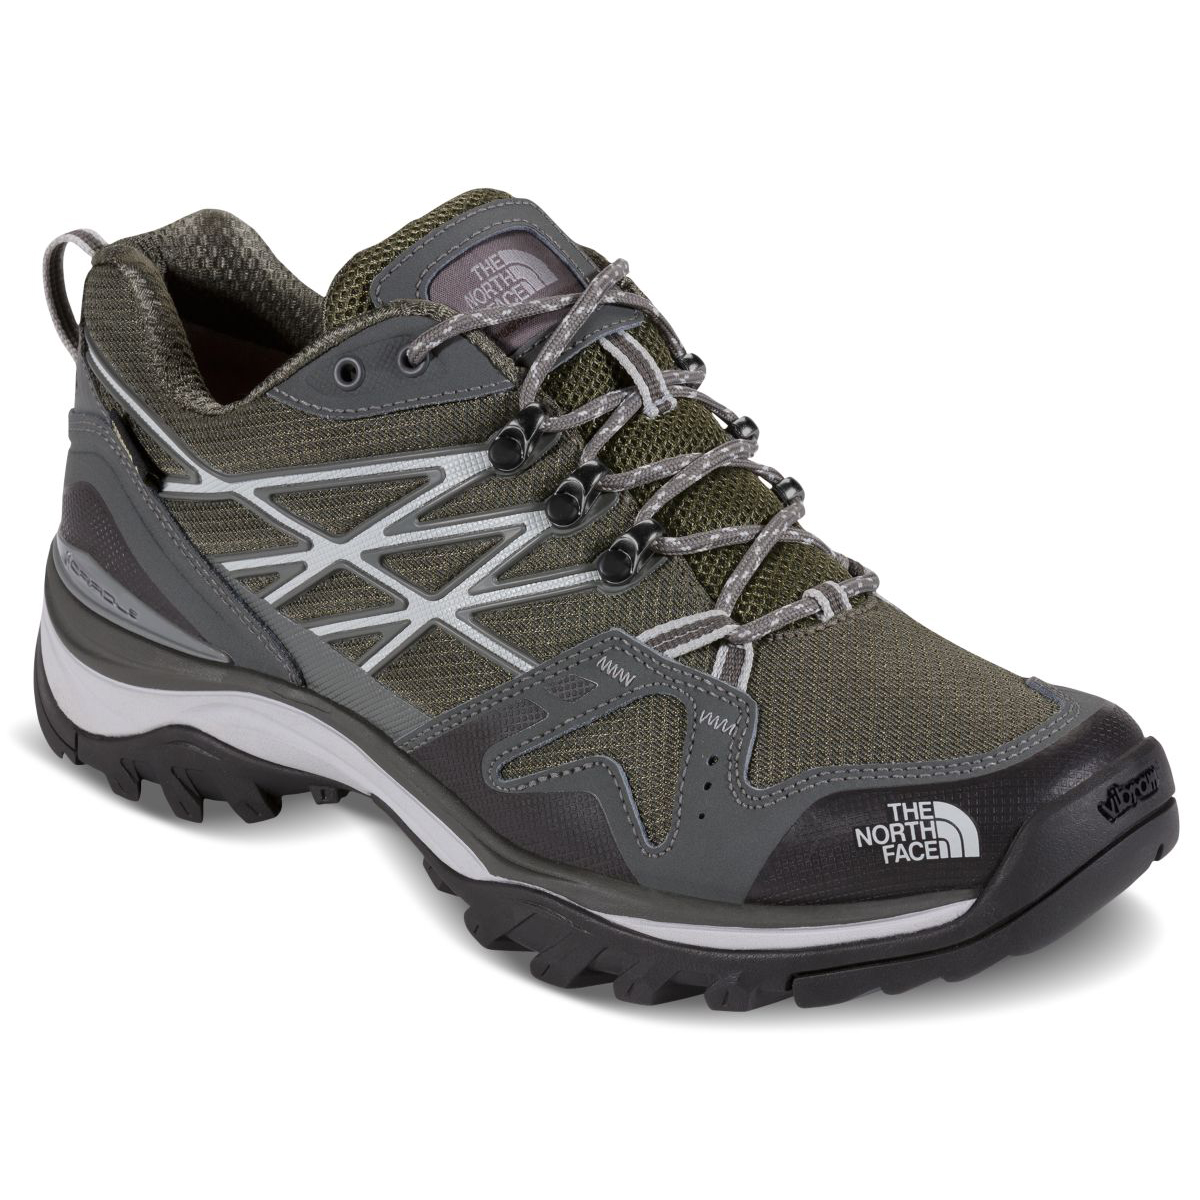 The North Face Men's Hedgehog Fastpack Gore-Tex Waterproof Low Hiking Shoes, Wide - Green, 11.5